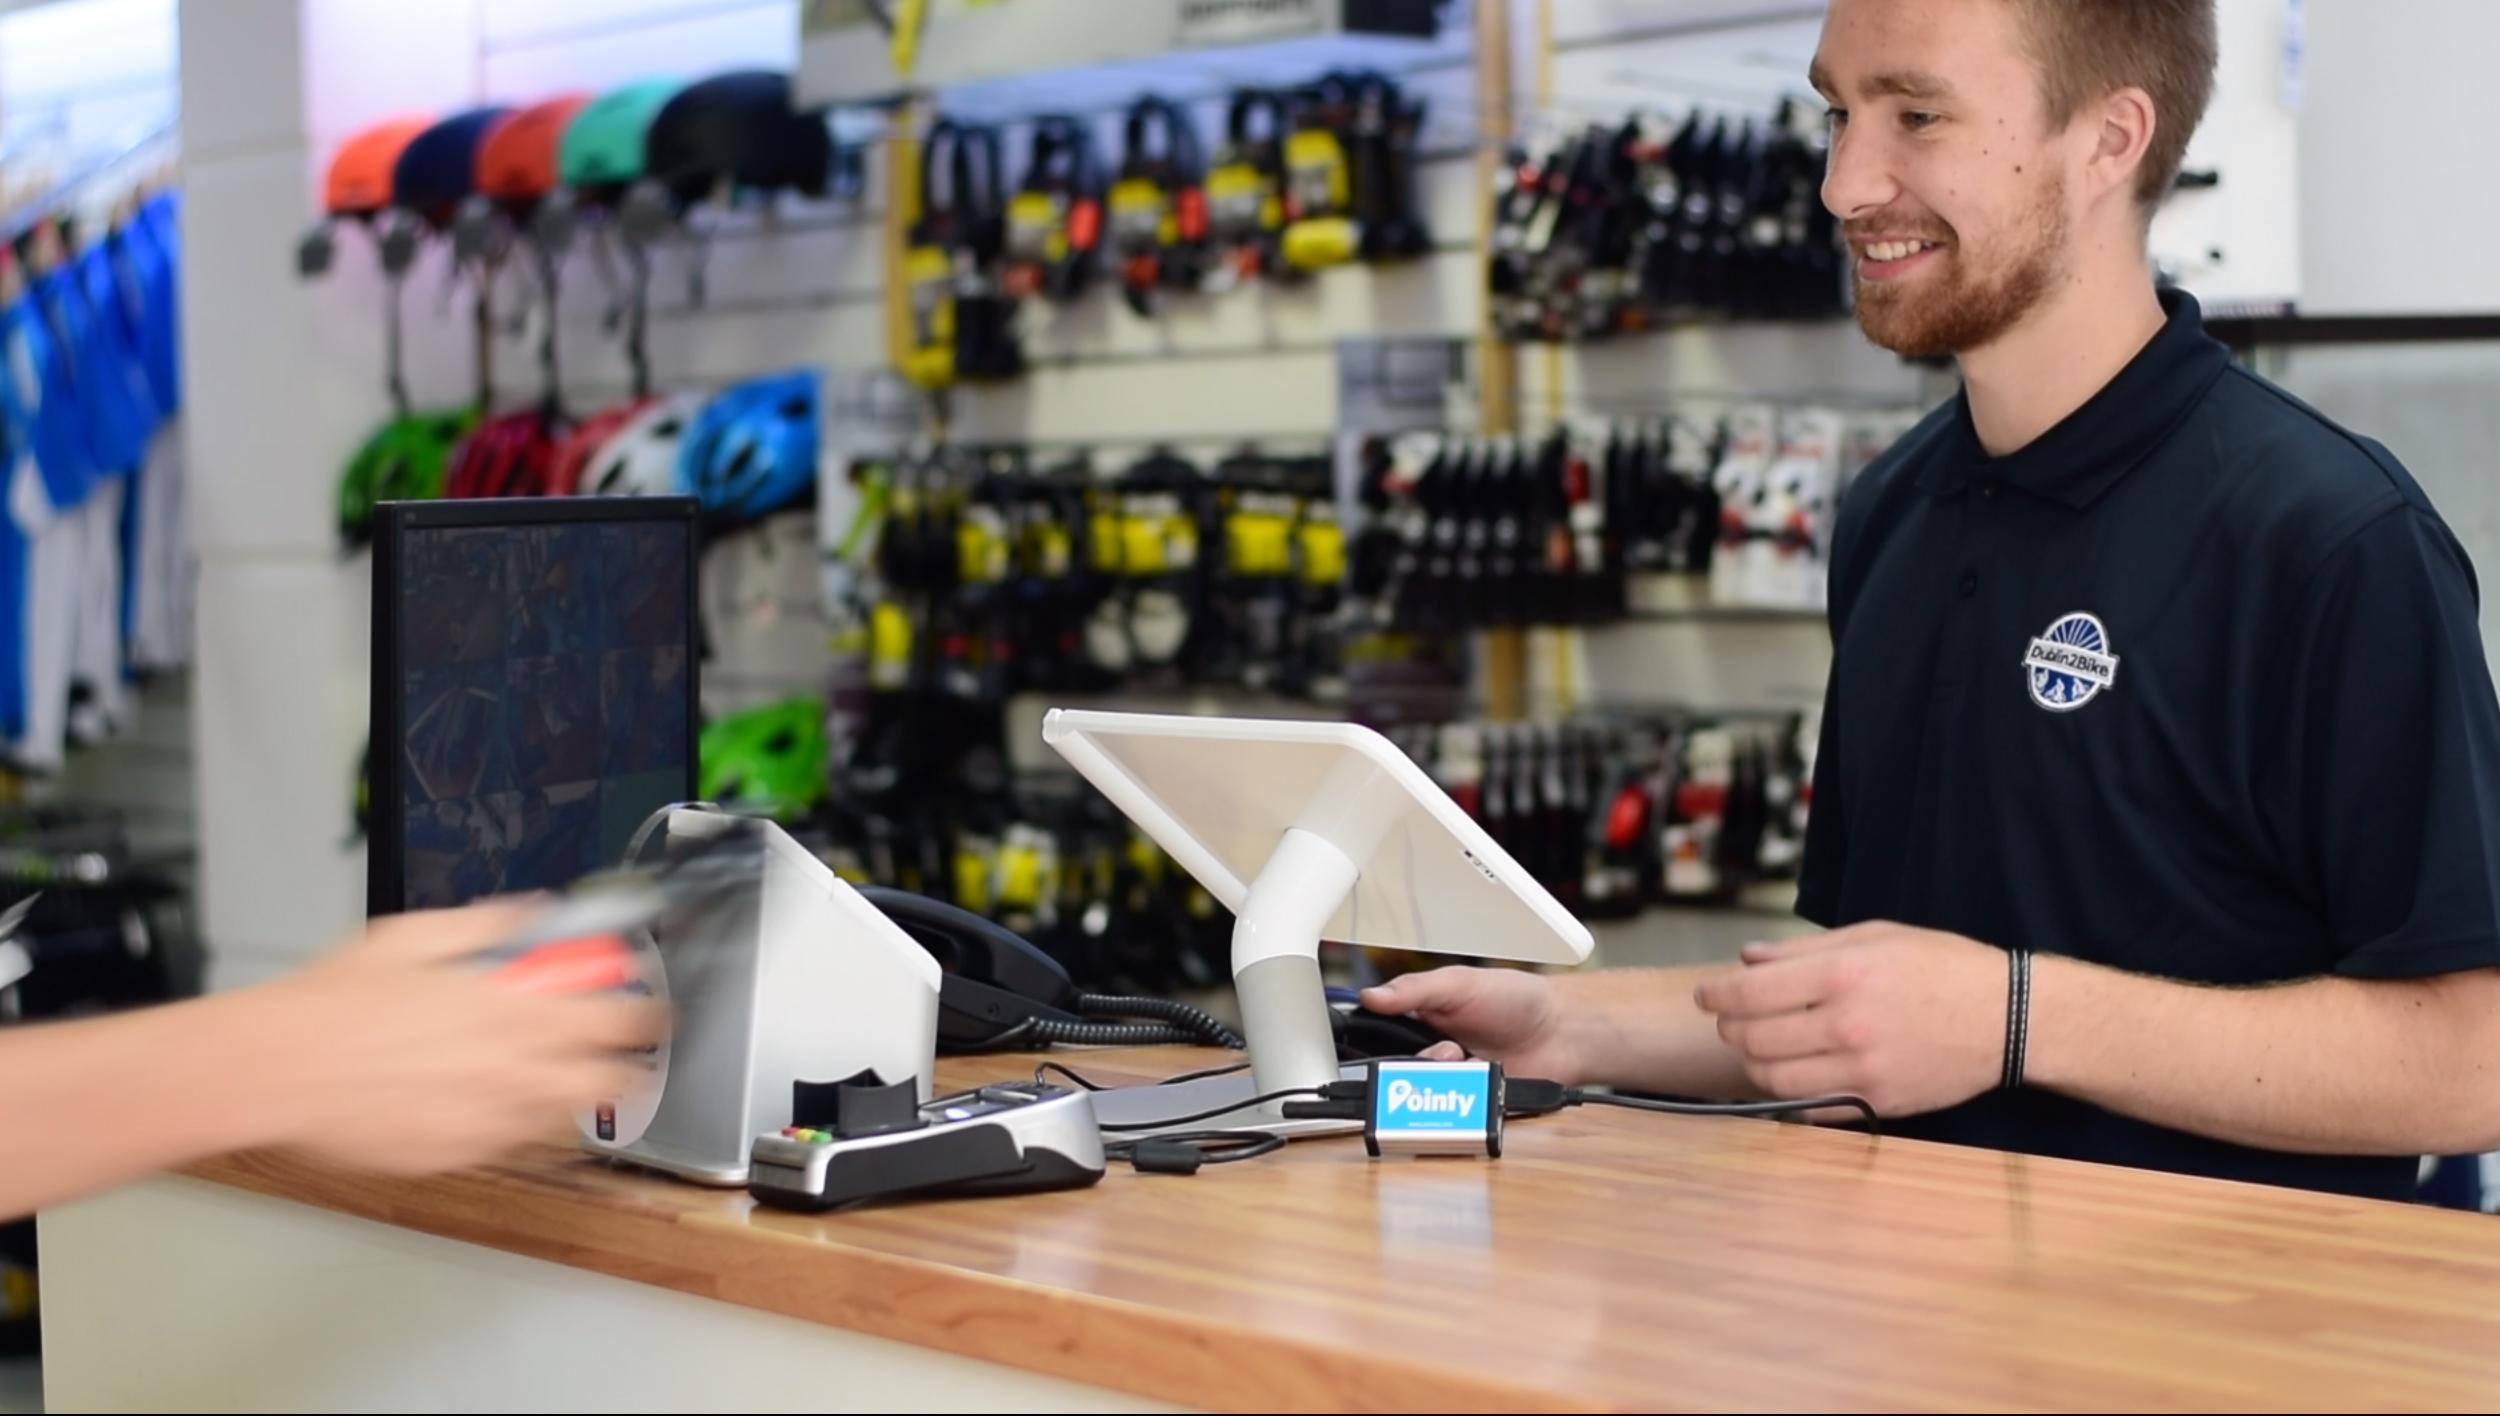 The start-up helping local retailers tackle Amazon is now in